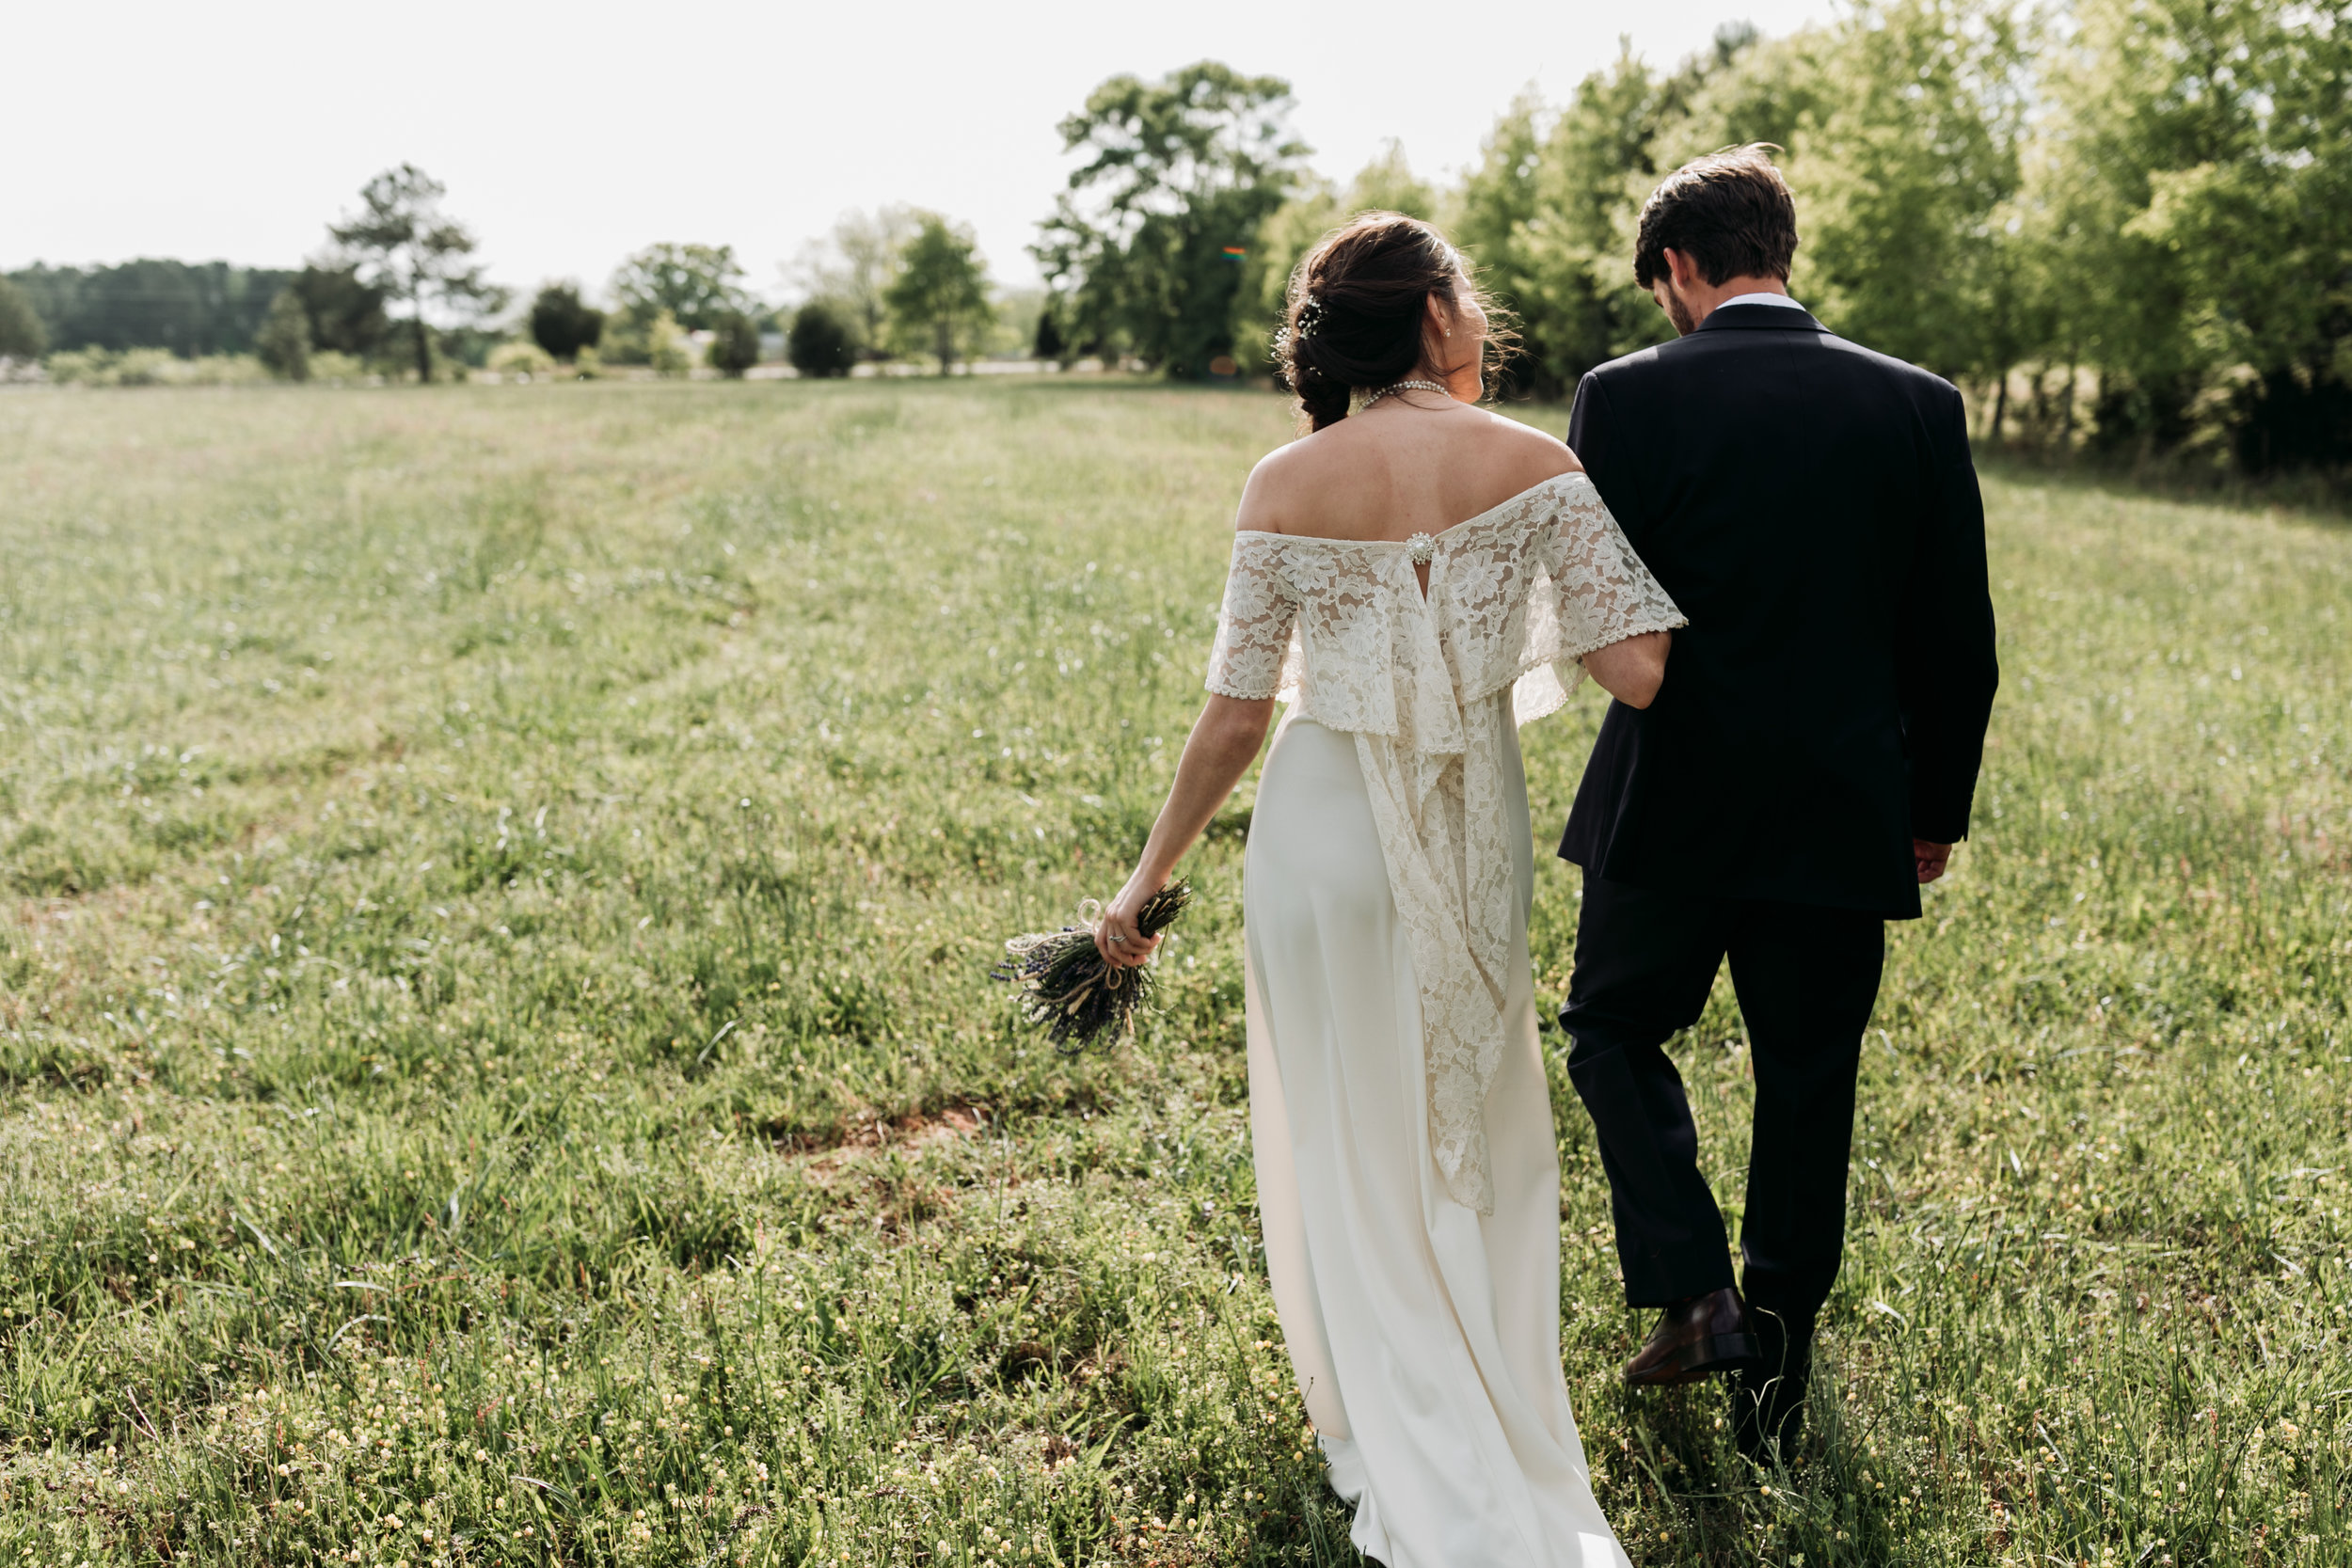 Ronni and Jordan taking a walk in the field to soak in all the joys of the day. pc: Sydney Renee Photography